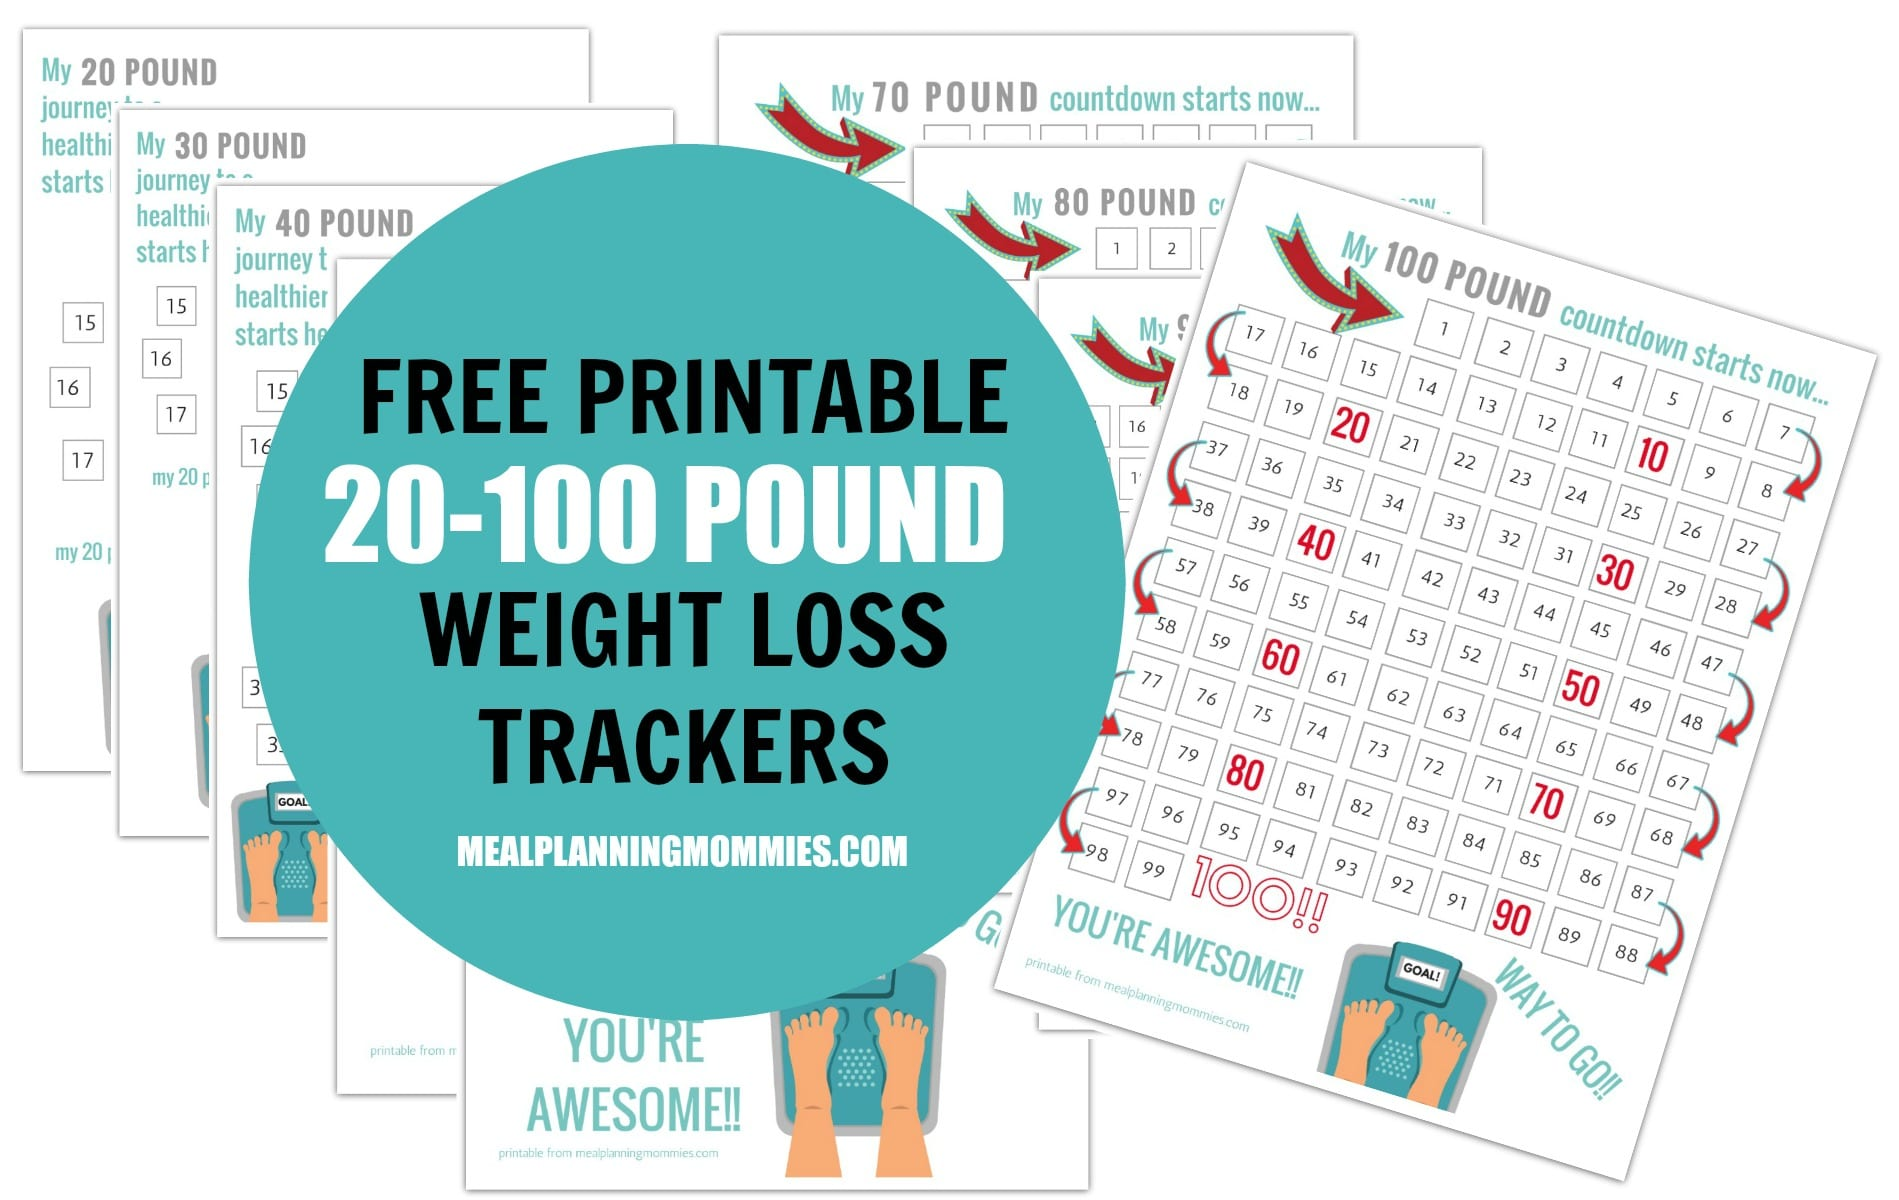 Free Printable 20-100 Pound Weight Loss Trackers - Meal Planning Mommies